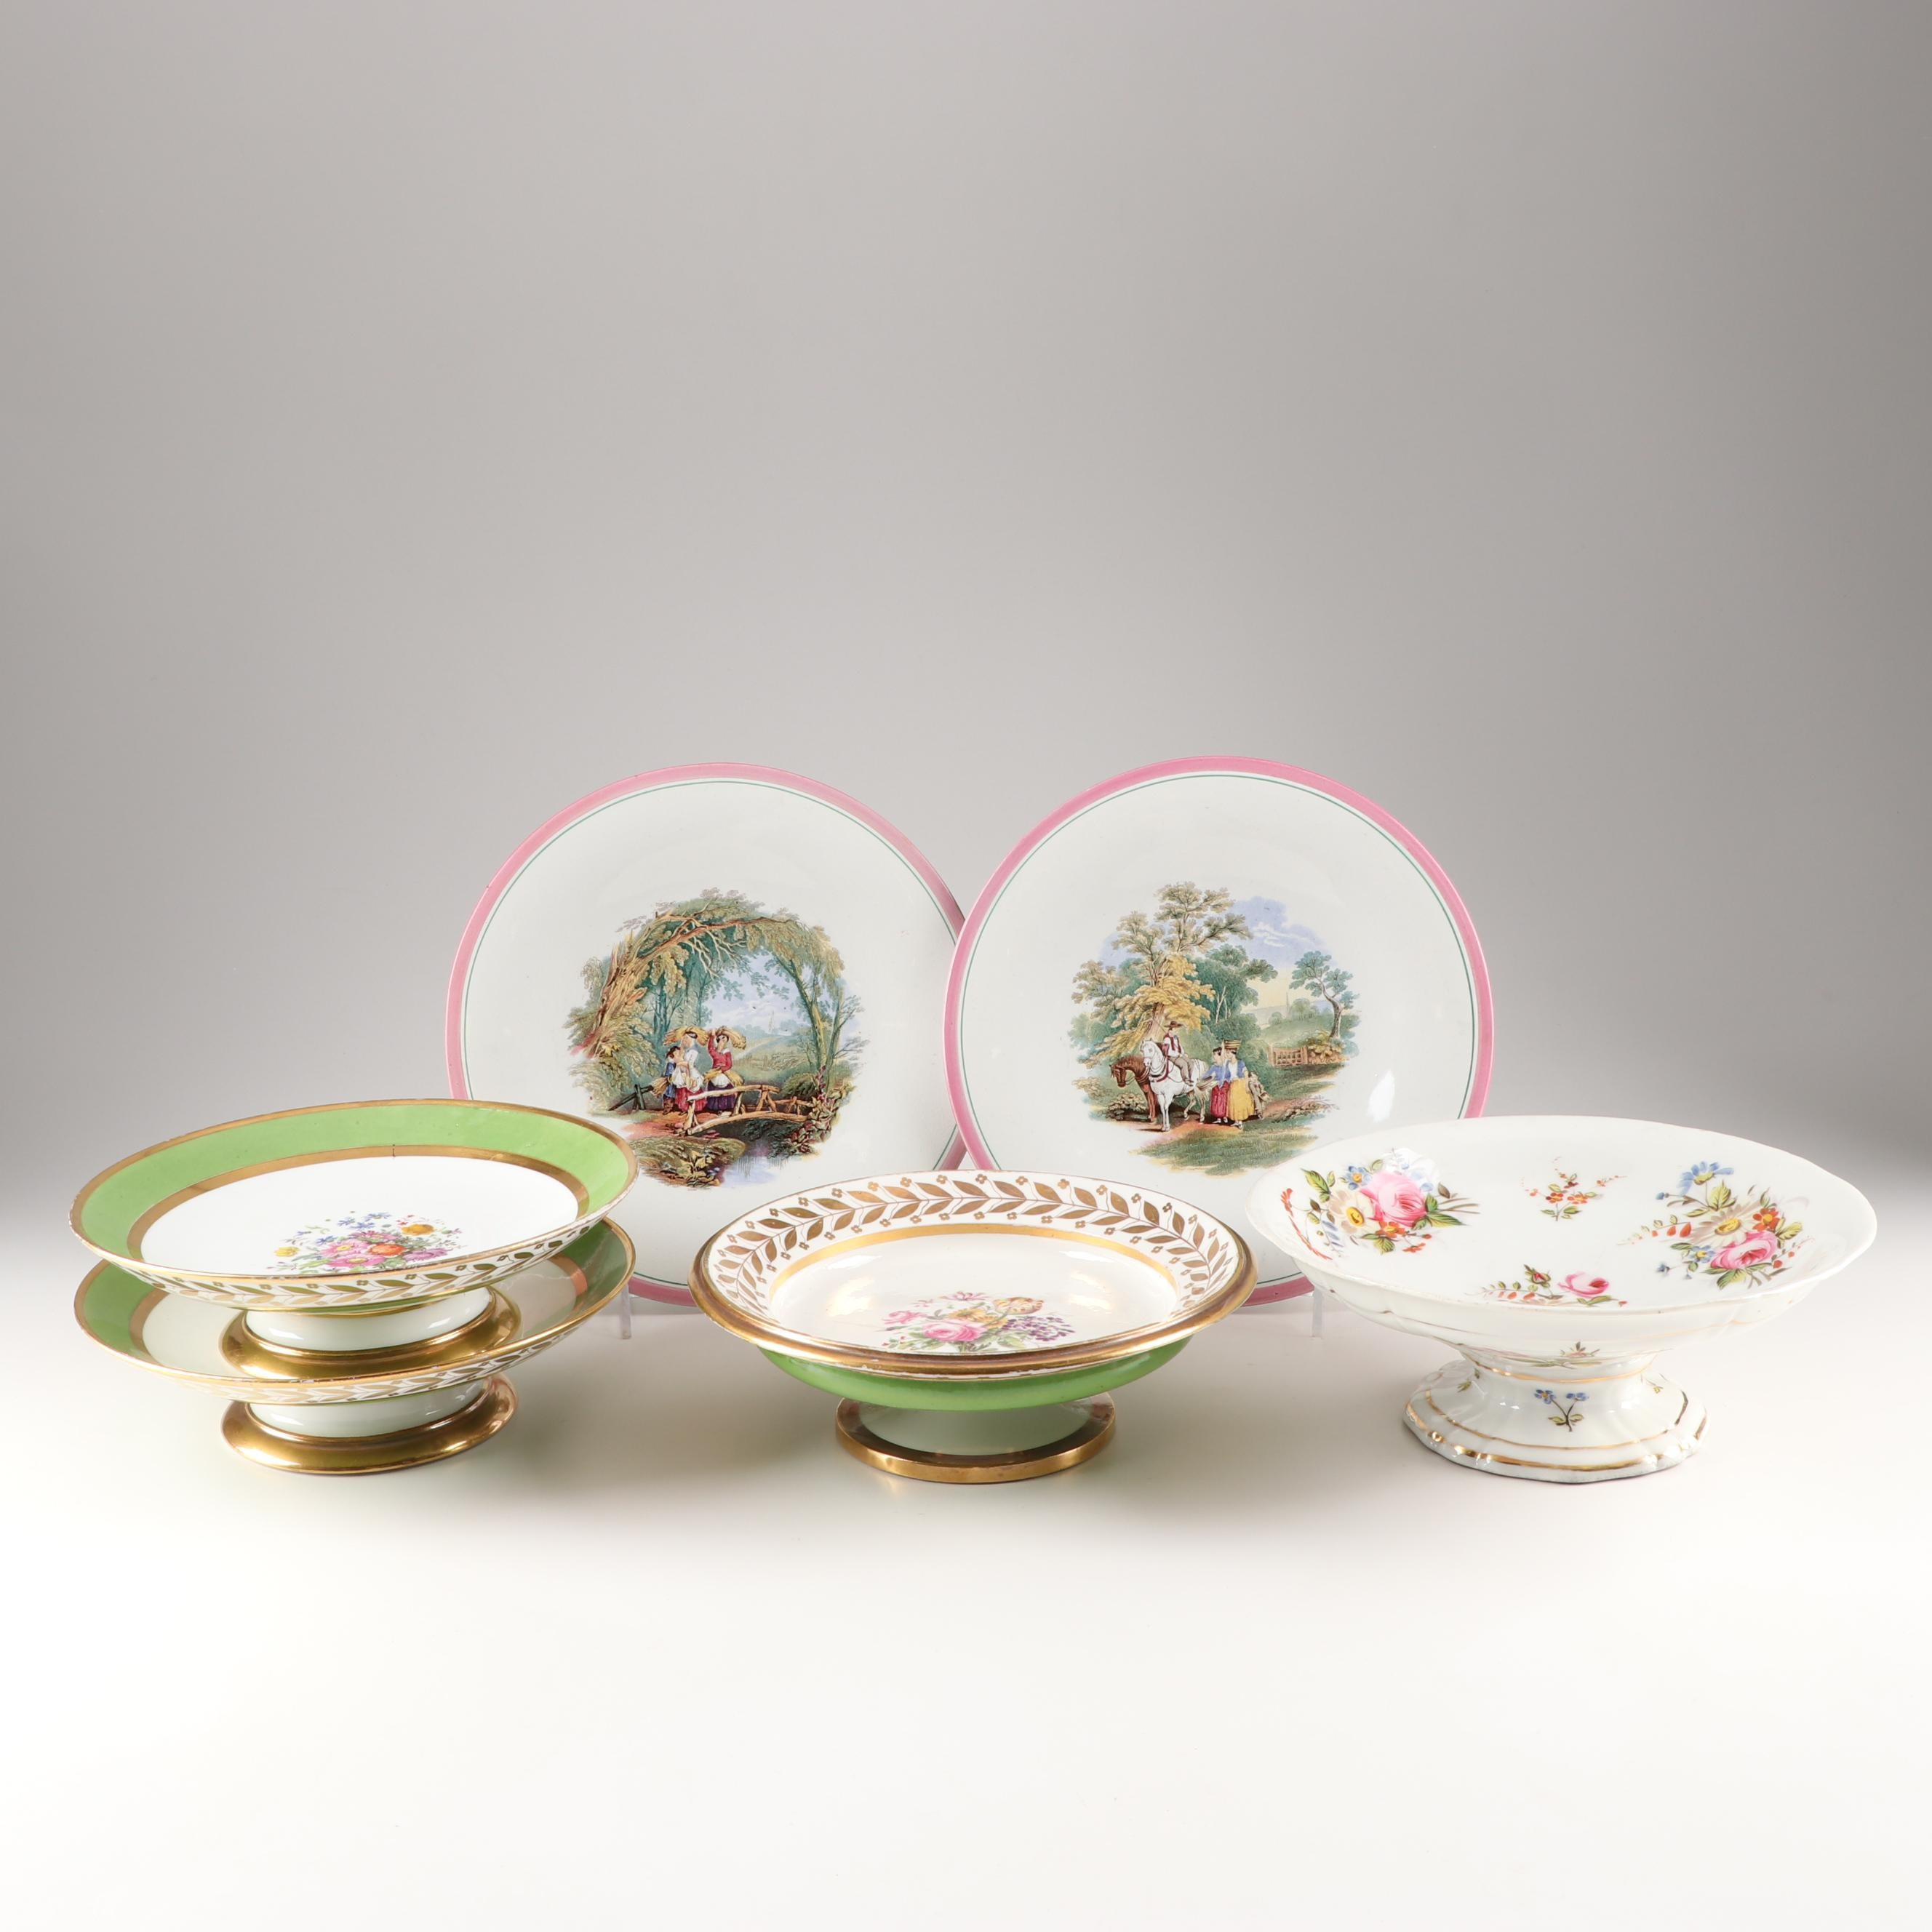 Decorative Compotes and Tableware Featuring Sevres